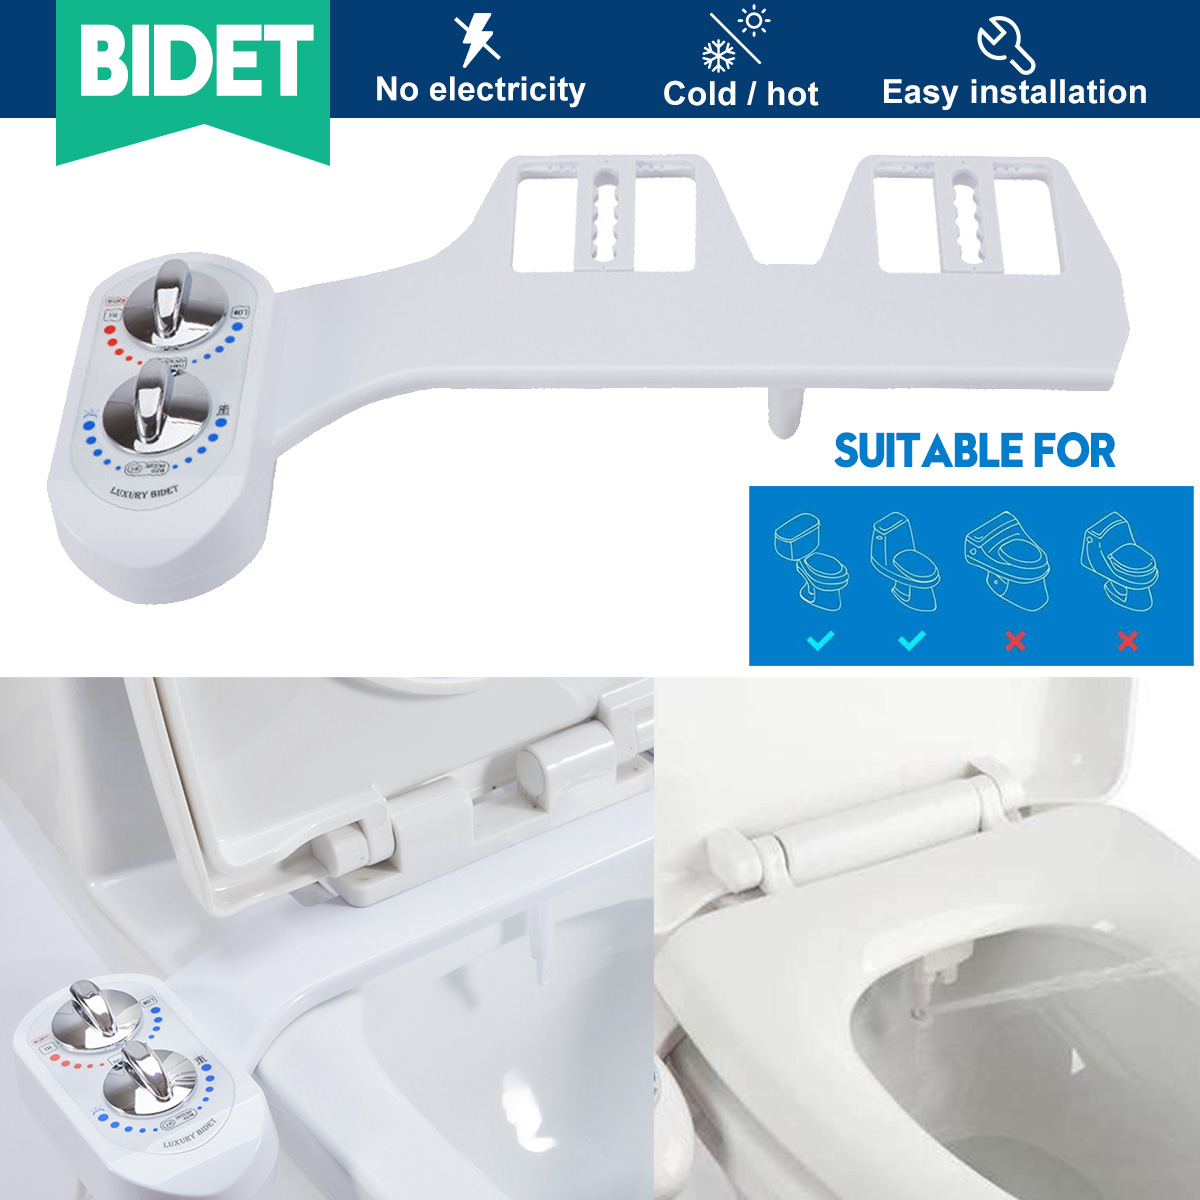 Hot And Cold Non Electric Bidet Toilet Seat Bidet Attachment Self Cleaning Nozzle Fresh Water Bidet Sprayer Mechanical Bidet Bidets Aliexpress